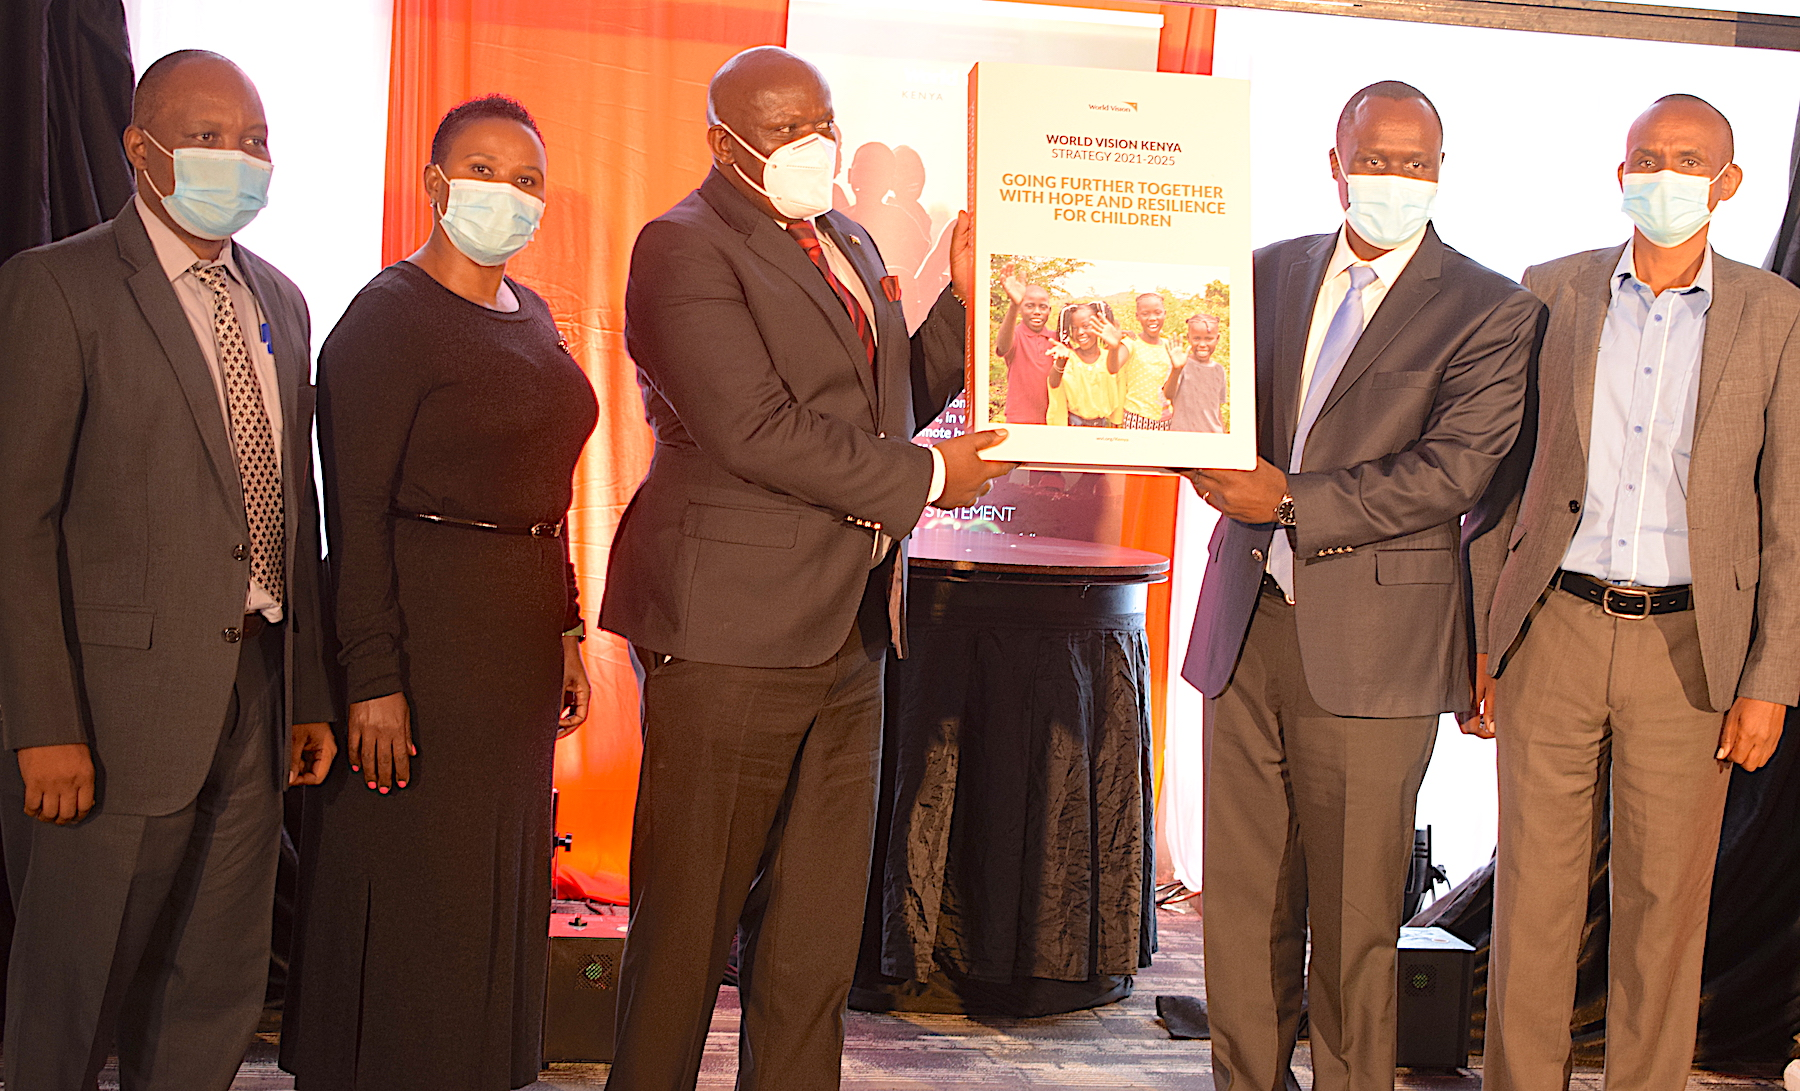 Left to right: Eric Wafukho (Chief Administrative Secretary for National Treasury & Planning for the government of Kenya) and Paul Lilan (World Vision Kenya Board Chair) hold the new five-year strategy (2021-2025) book for World Vision Kenya during the launch ceremony. ©World Vision Photo/Kenya.